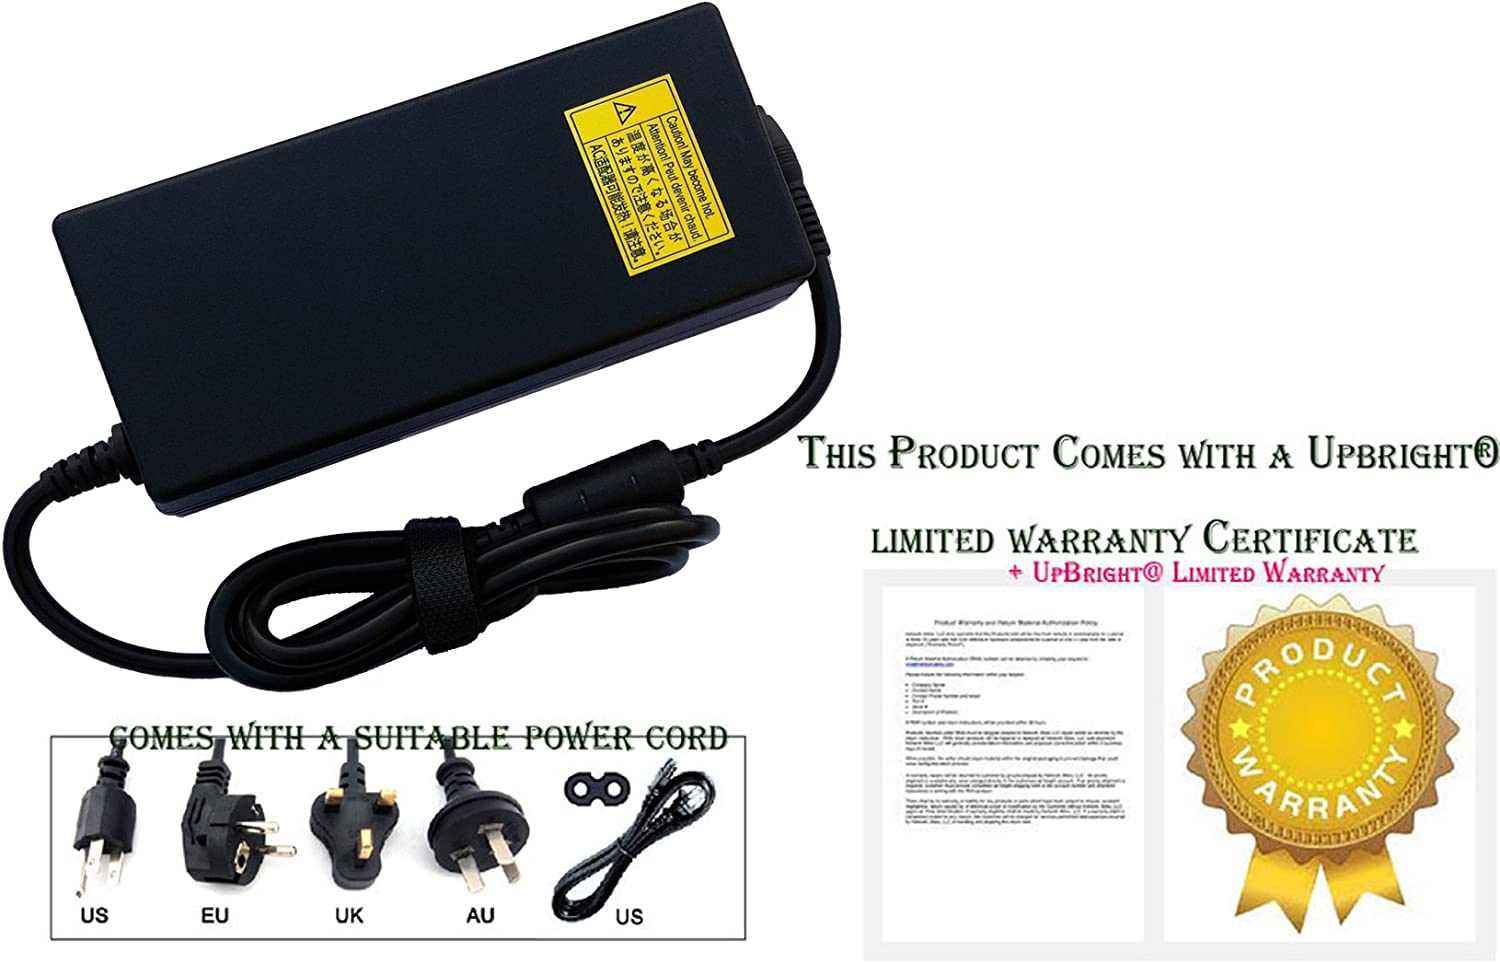 UpBright New Global AC//DC Adapter for Cincon Electronics TRG150A480-01E13 TRG150A480-01E13-Level-V Desktop Power Supply Cord Cable PS Charger Mains PSU